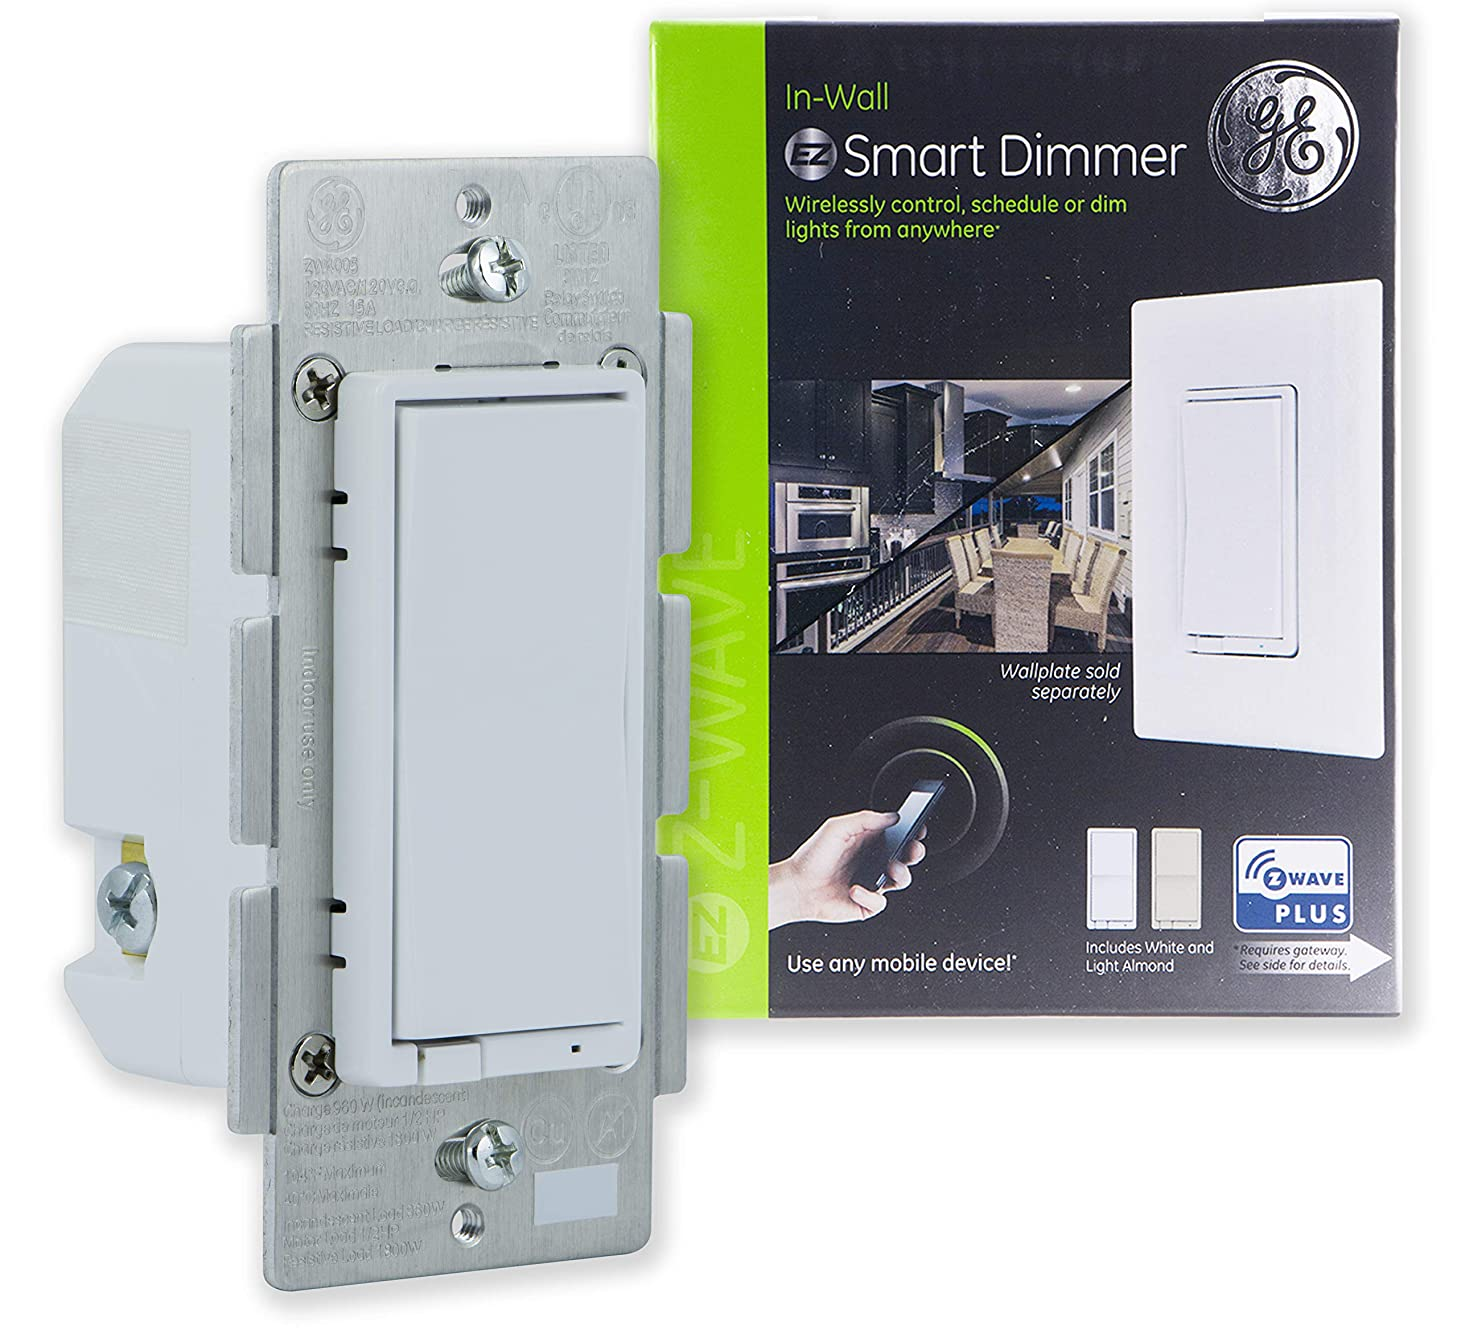 GE Enbrighten Z-Wave Plus Smart Dimmer Switch, Full Dimming, In-Wall, Incl. White and Lt. Almond Paddles, Repeater/Range Extender, Zwave Hub Required, Works with SmartThings, Wink, Alexa, 14294 mcxvddpuw